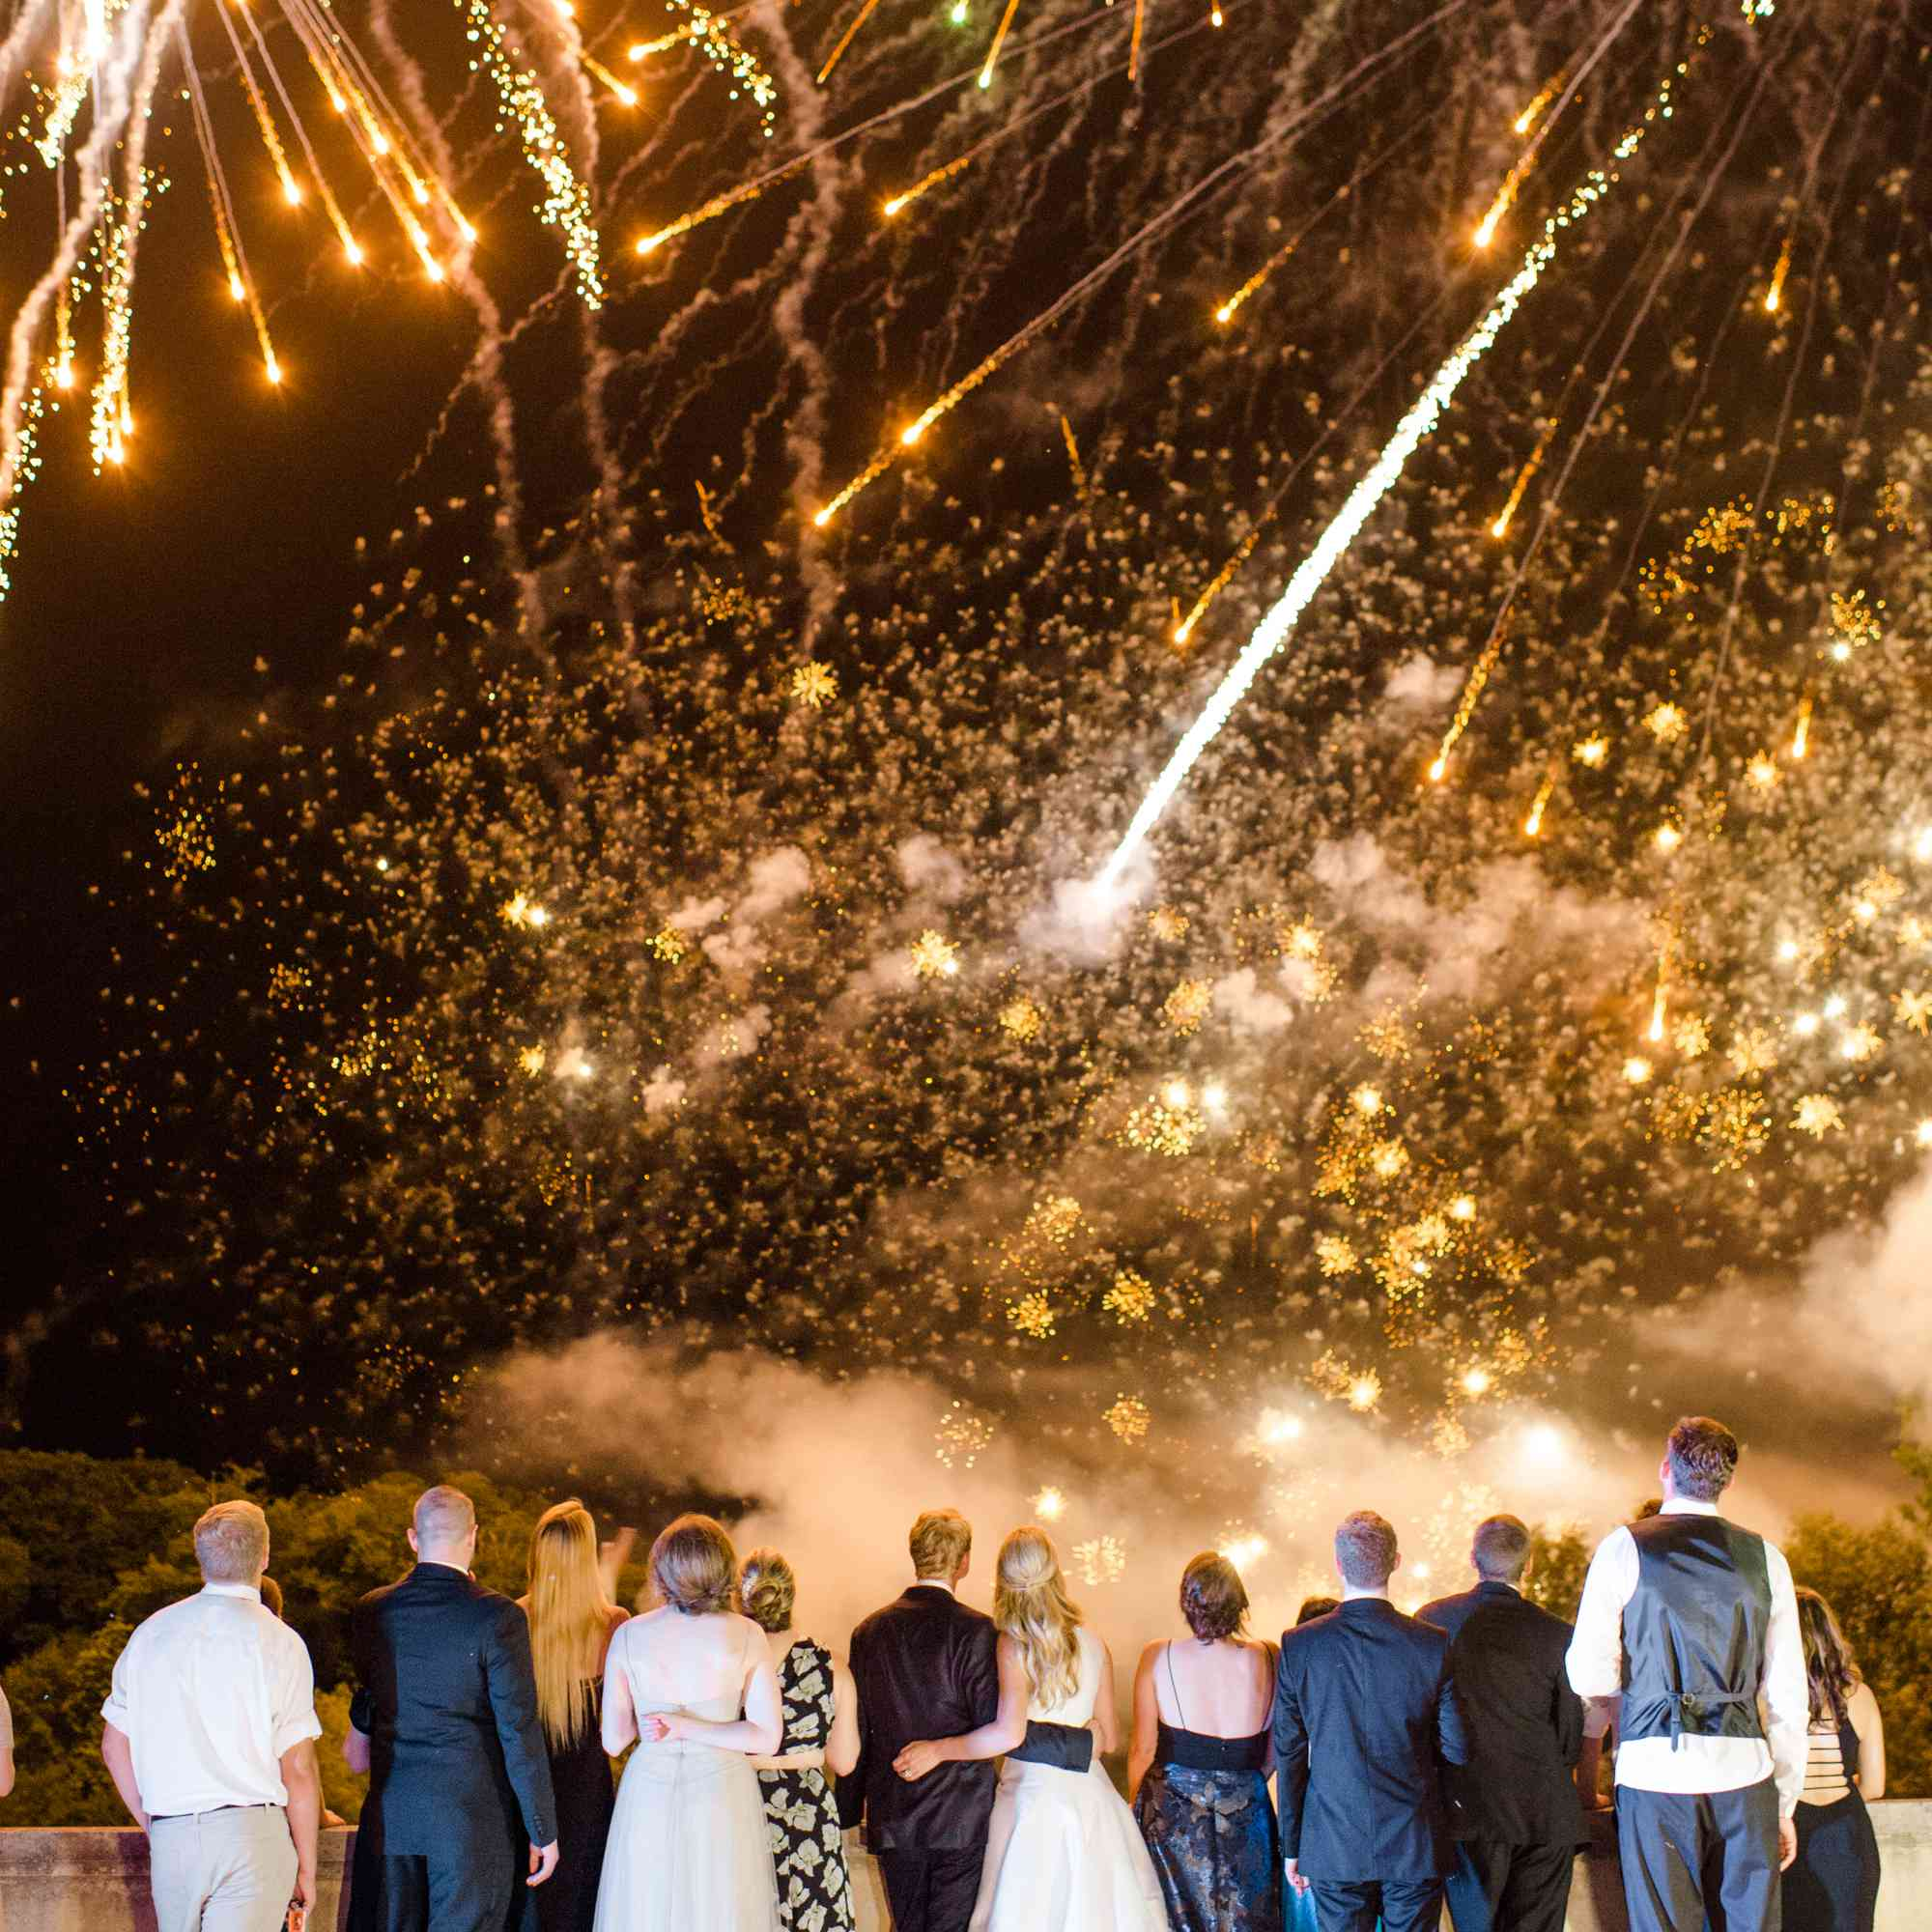 <p>Wedding party watching party watching fireworks</p><br><br>